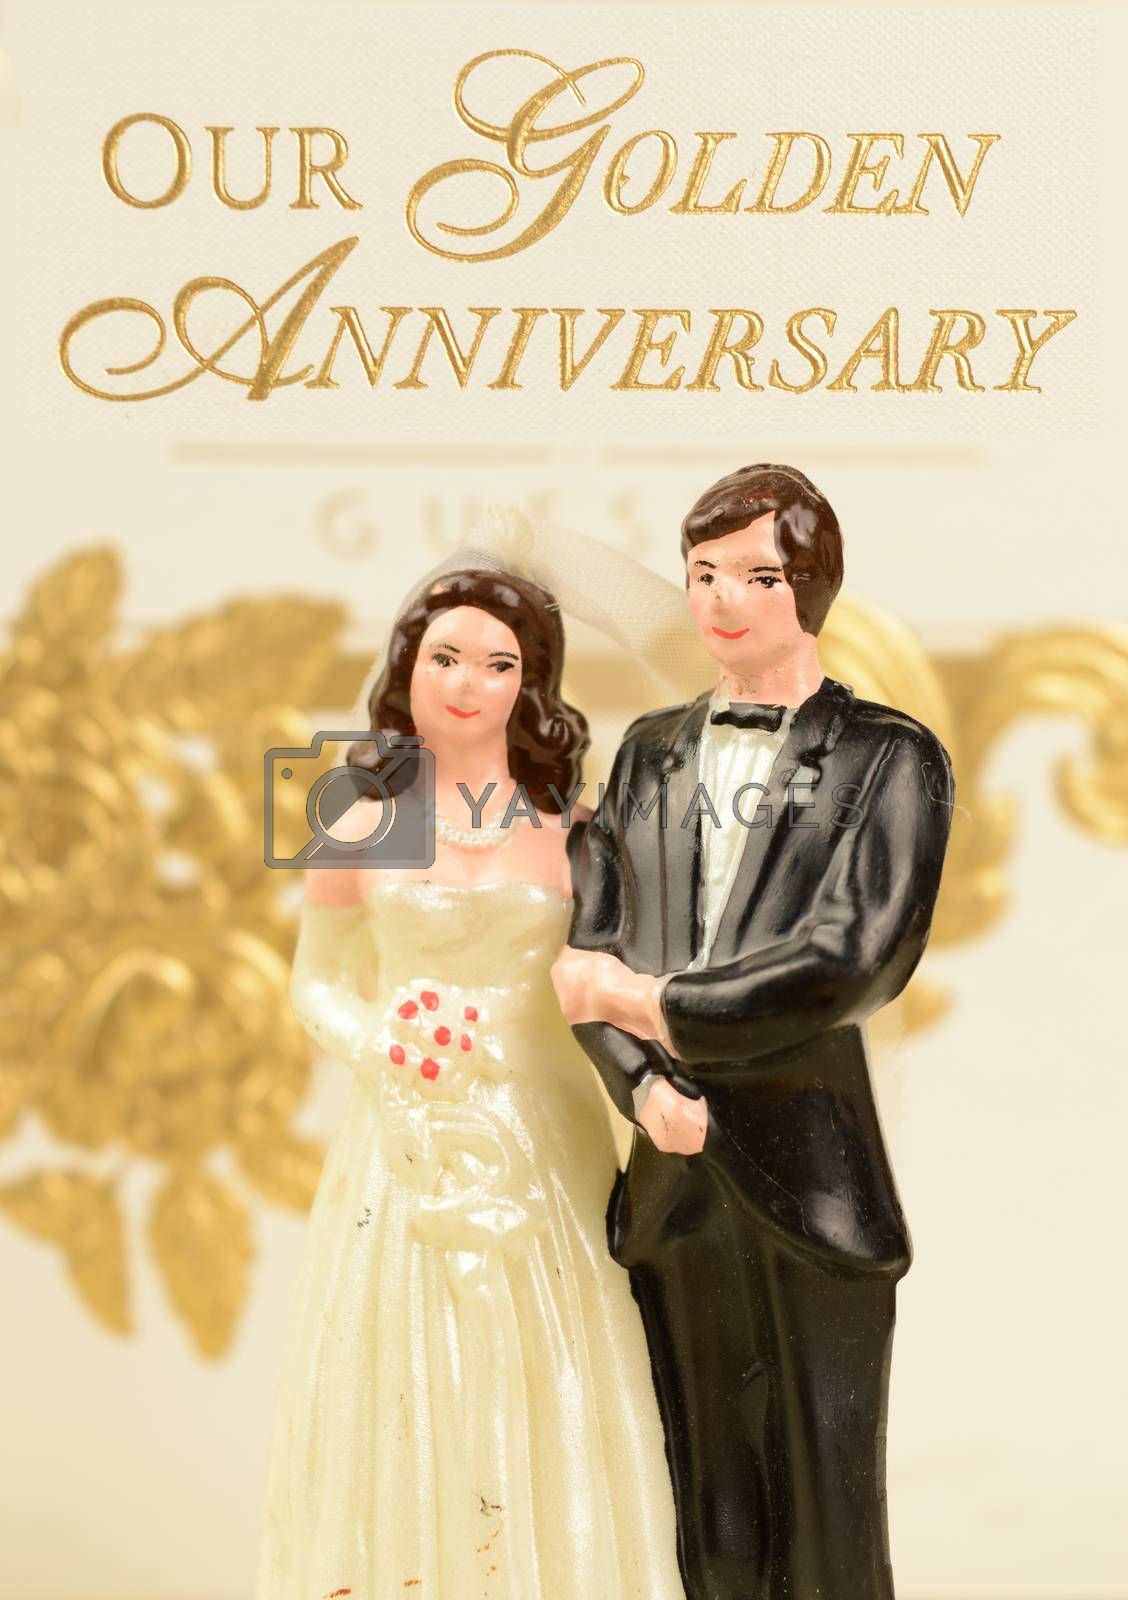 A celebratory image for the golden anniversary of a wedded couple.